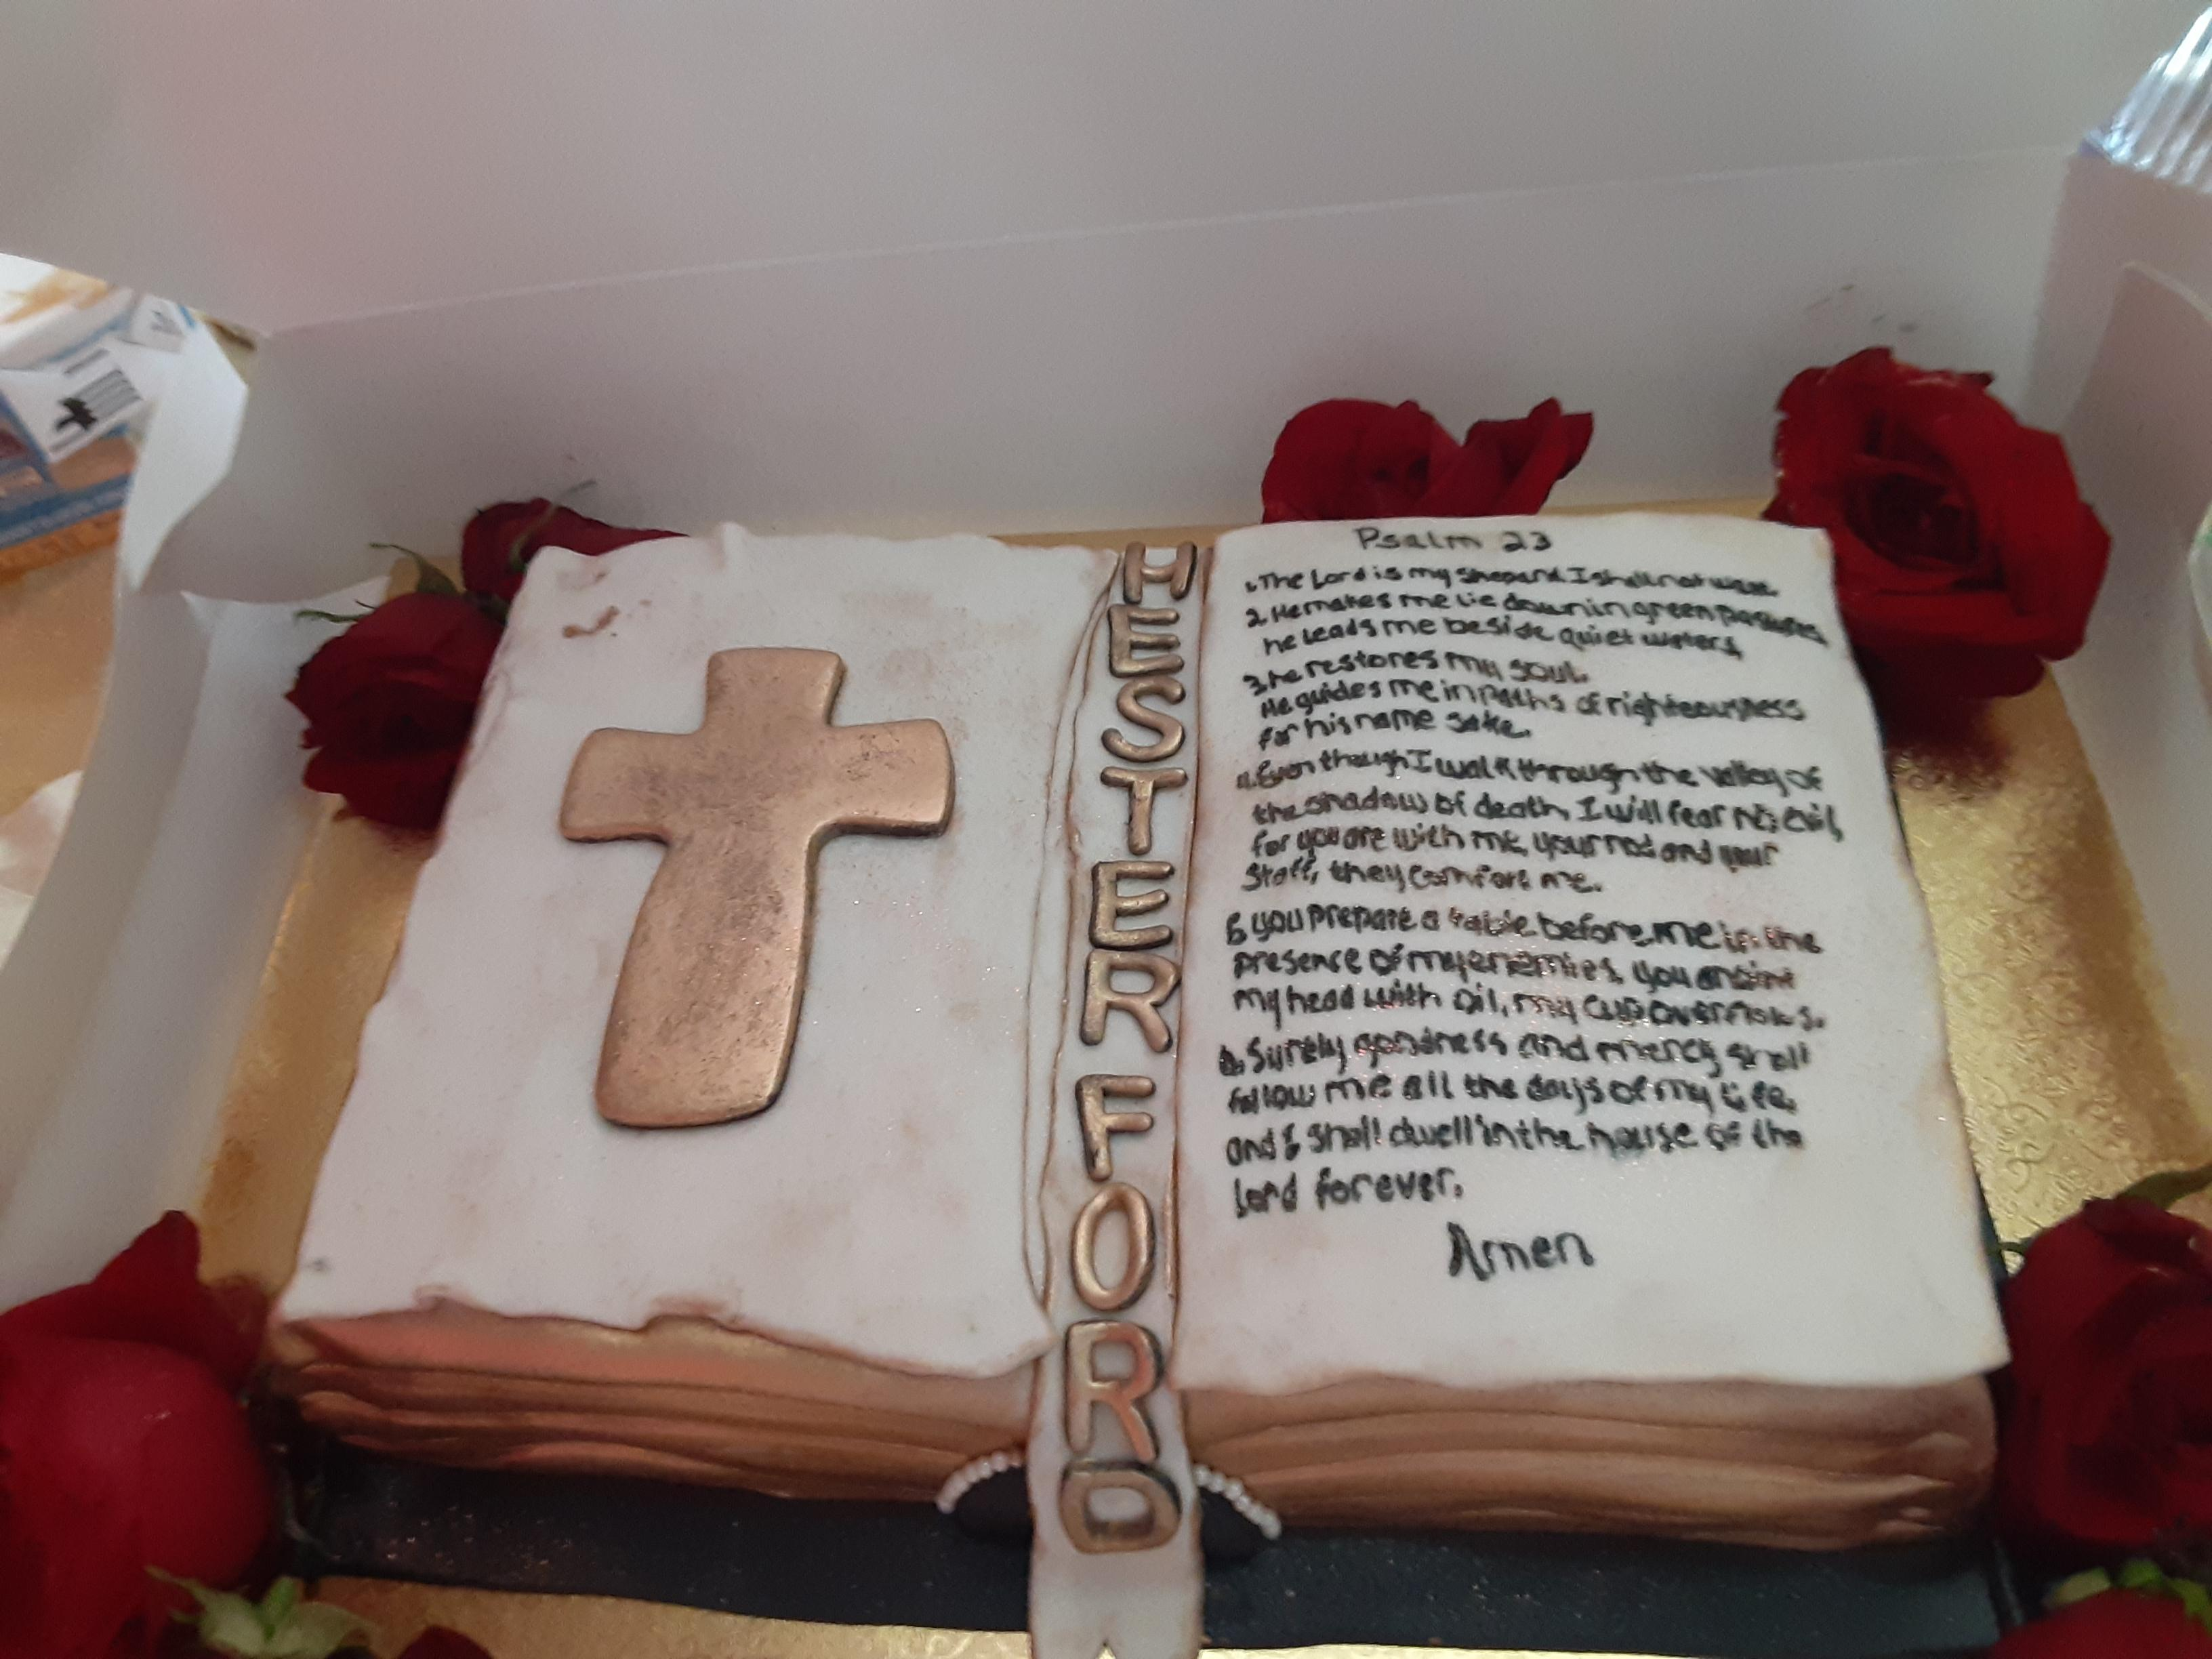 A cake for Hester Ford's birthday. (Photo courtesy of Mary Hill)